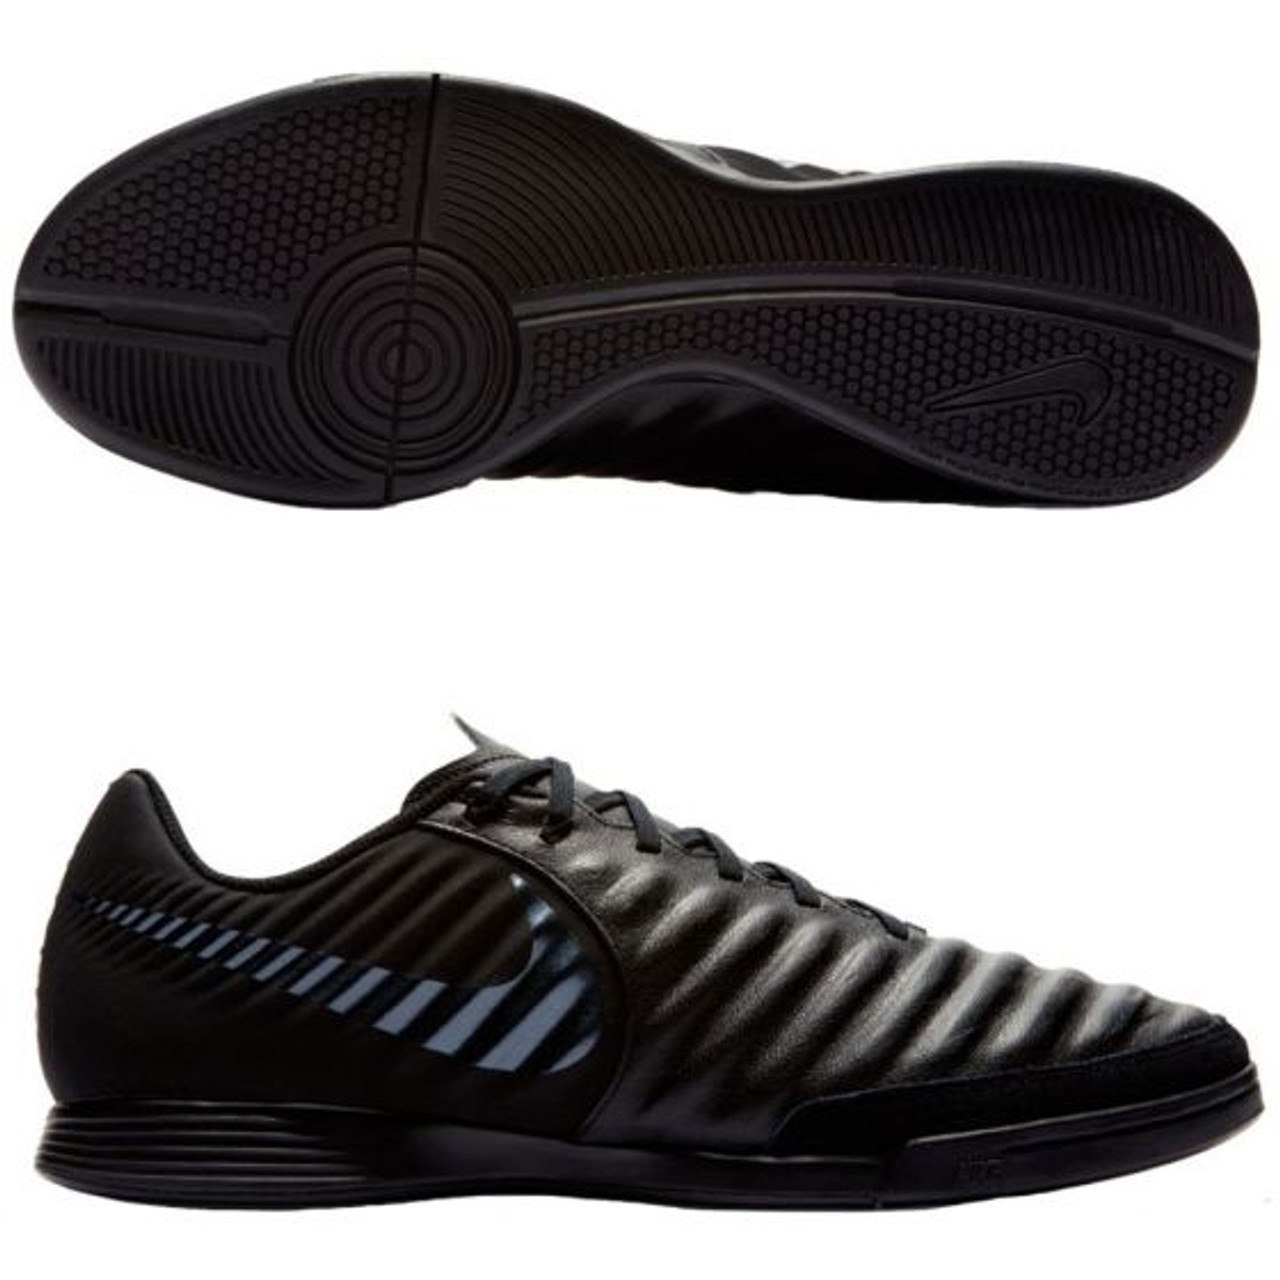 finest selection 3c07d 9eca9 NIKE LEGEND 7 ACADEMY Indoor Black